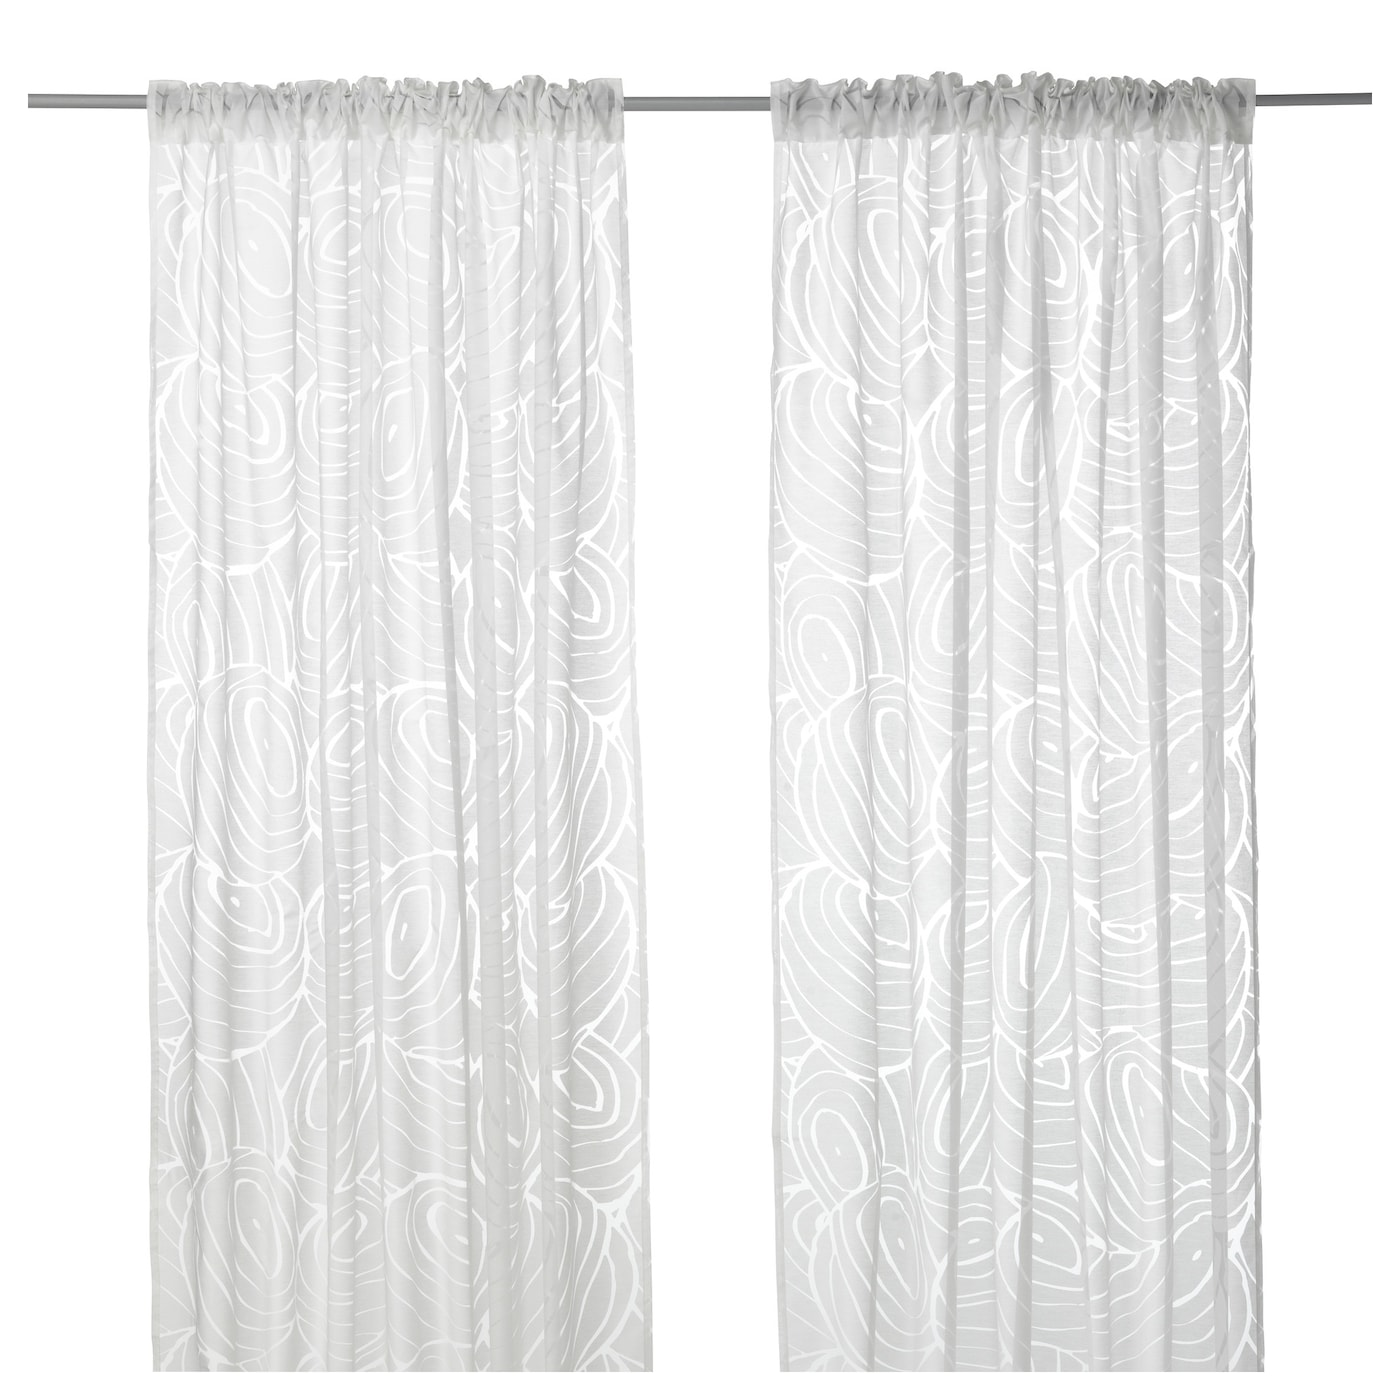 IKEA NORDIS sheer curtains, 1 pair The curtains can be used on a curtain rod or a curtain track.